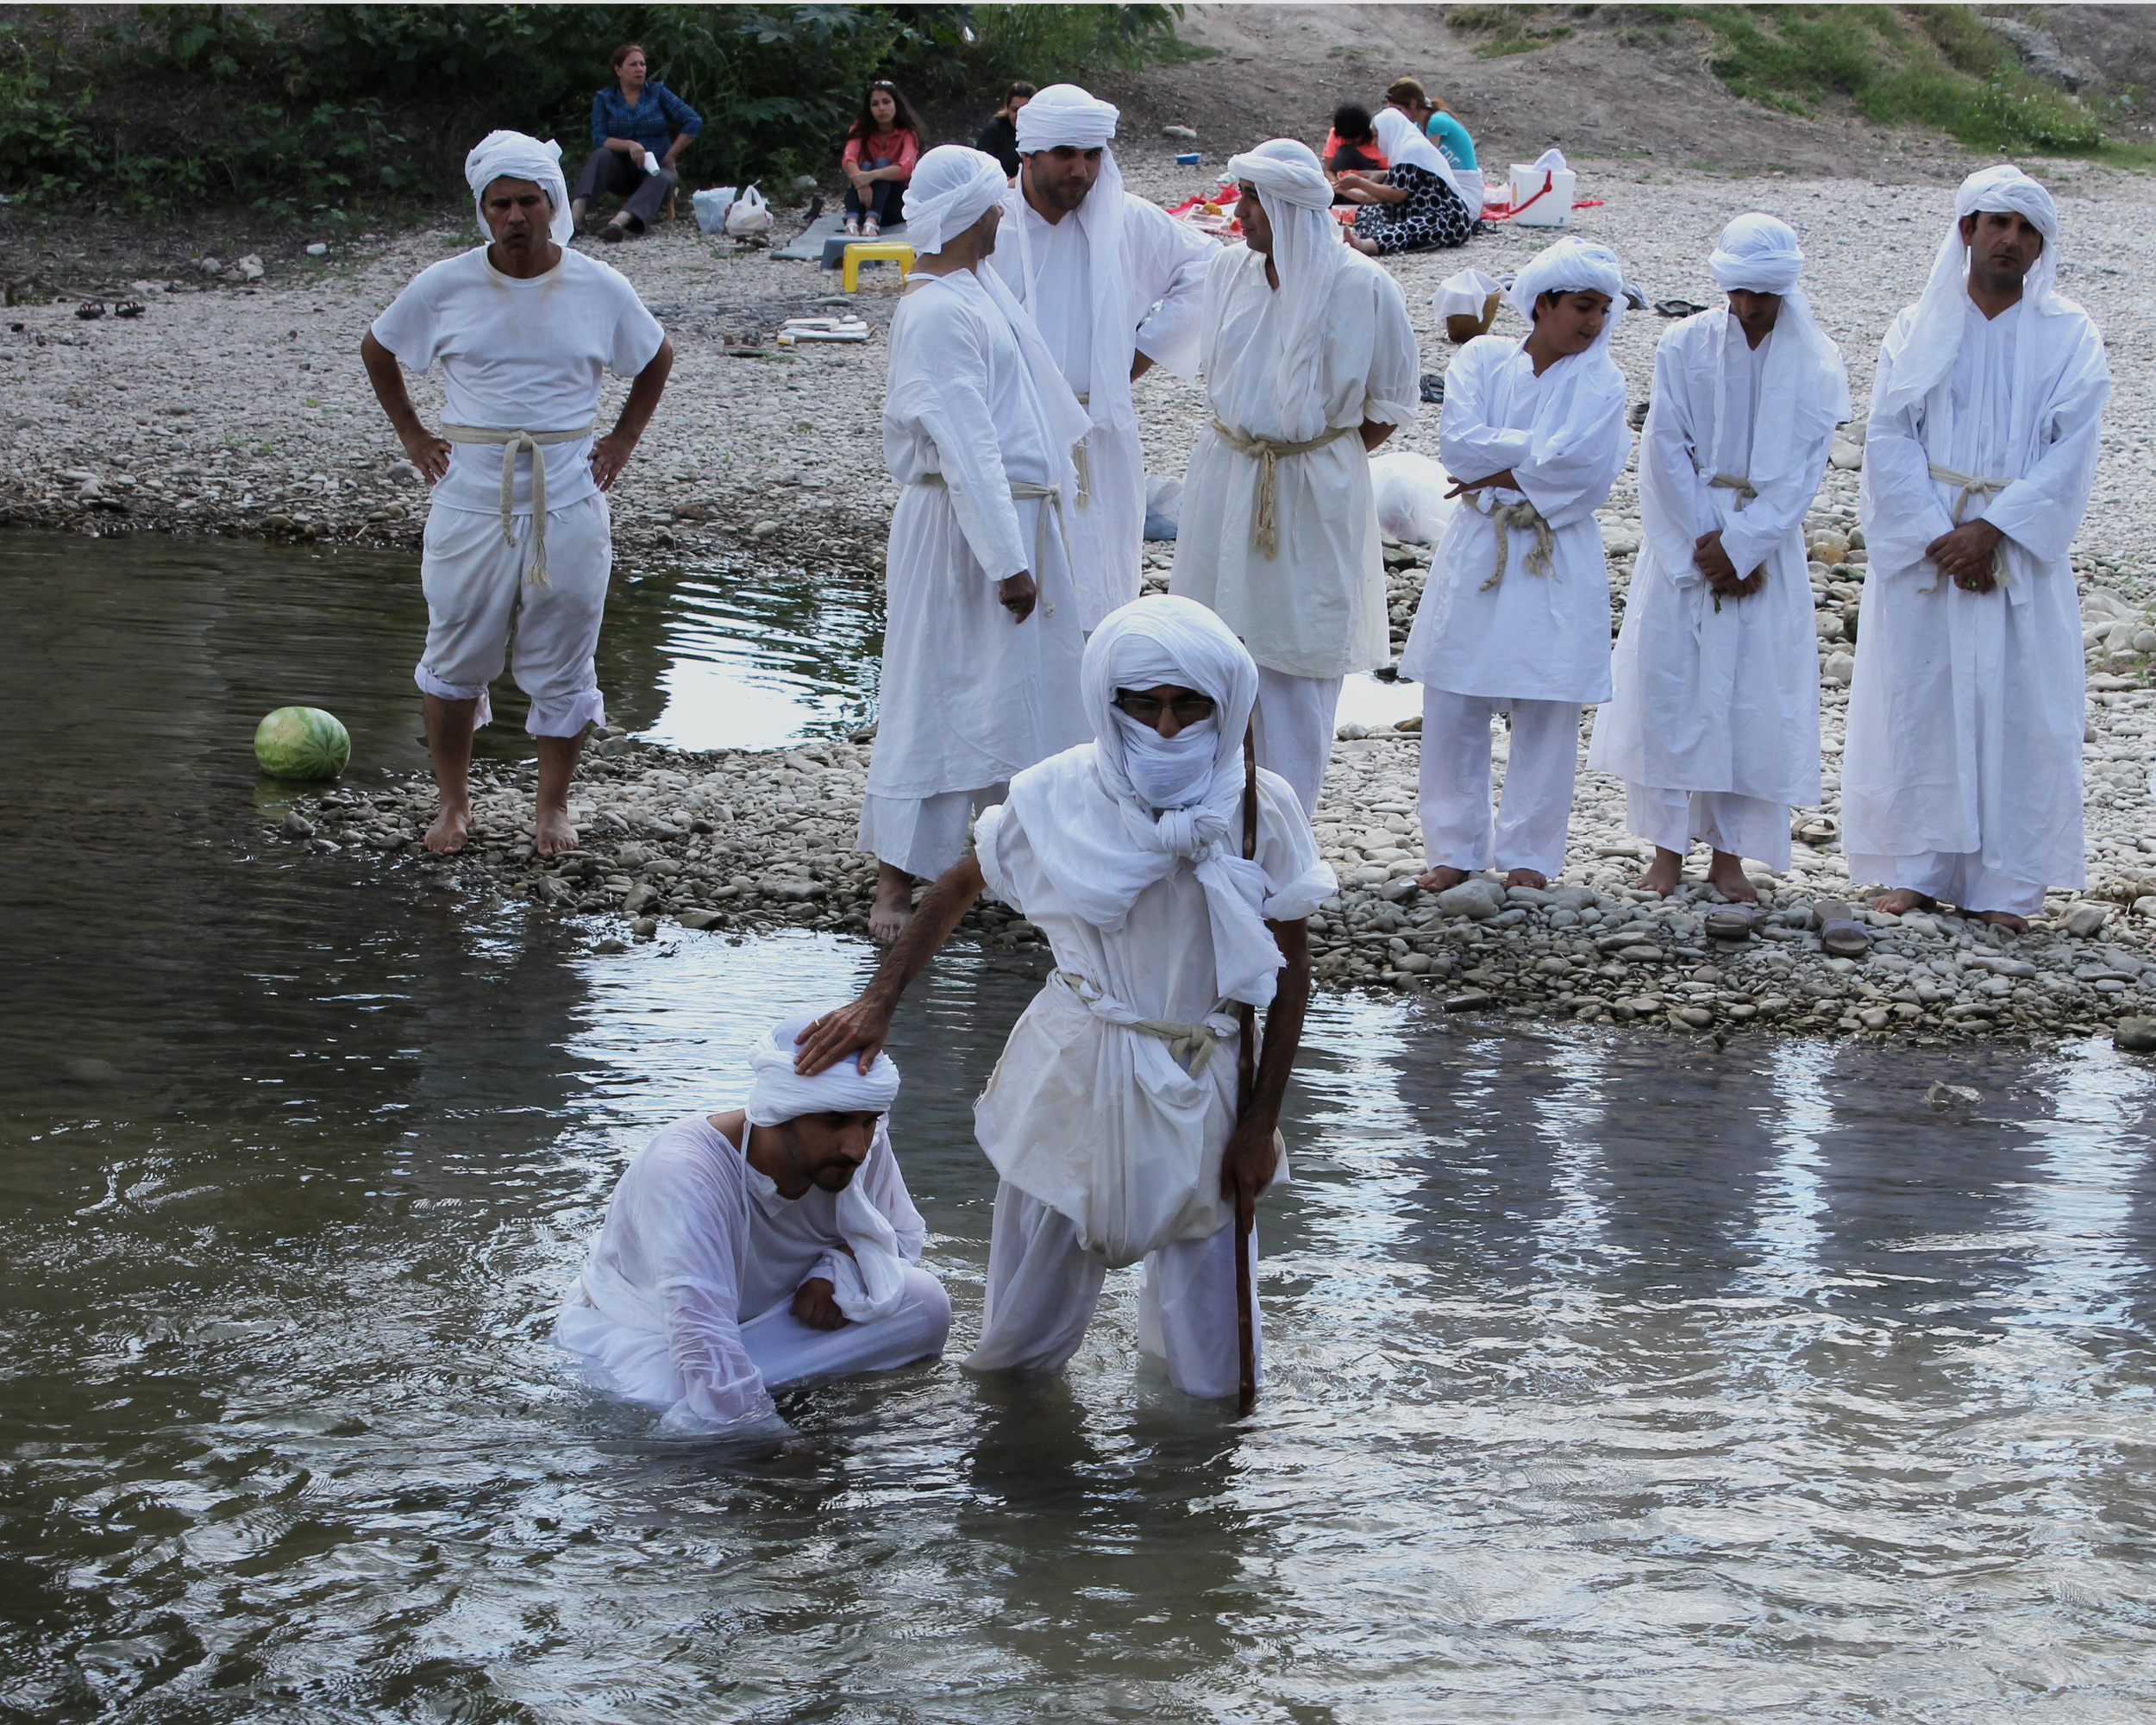 Community members watch a baptism in progress. The Mandaeans believe in non-violence and they avoid altering their body, which means some members don't cut their hair. Their minority status has led to centuries of persecution. There were around 60,000 Mandaeans living in Iraq in 2003. Now there are less than 5,000.